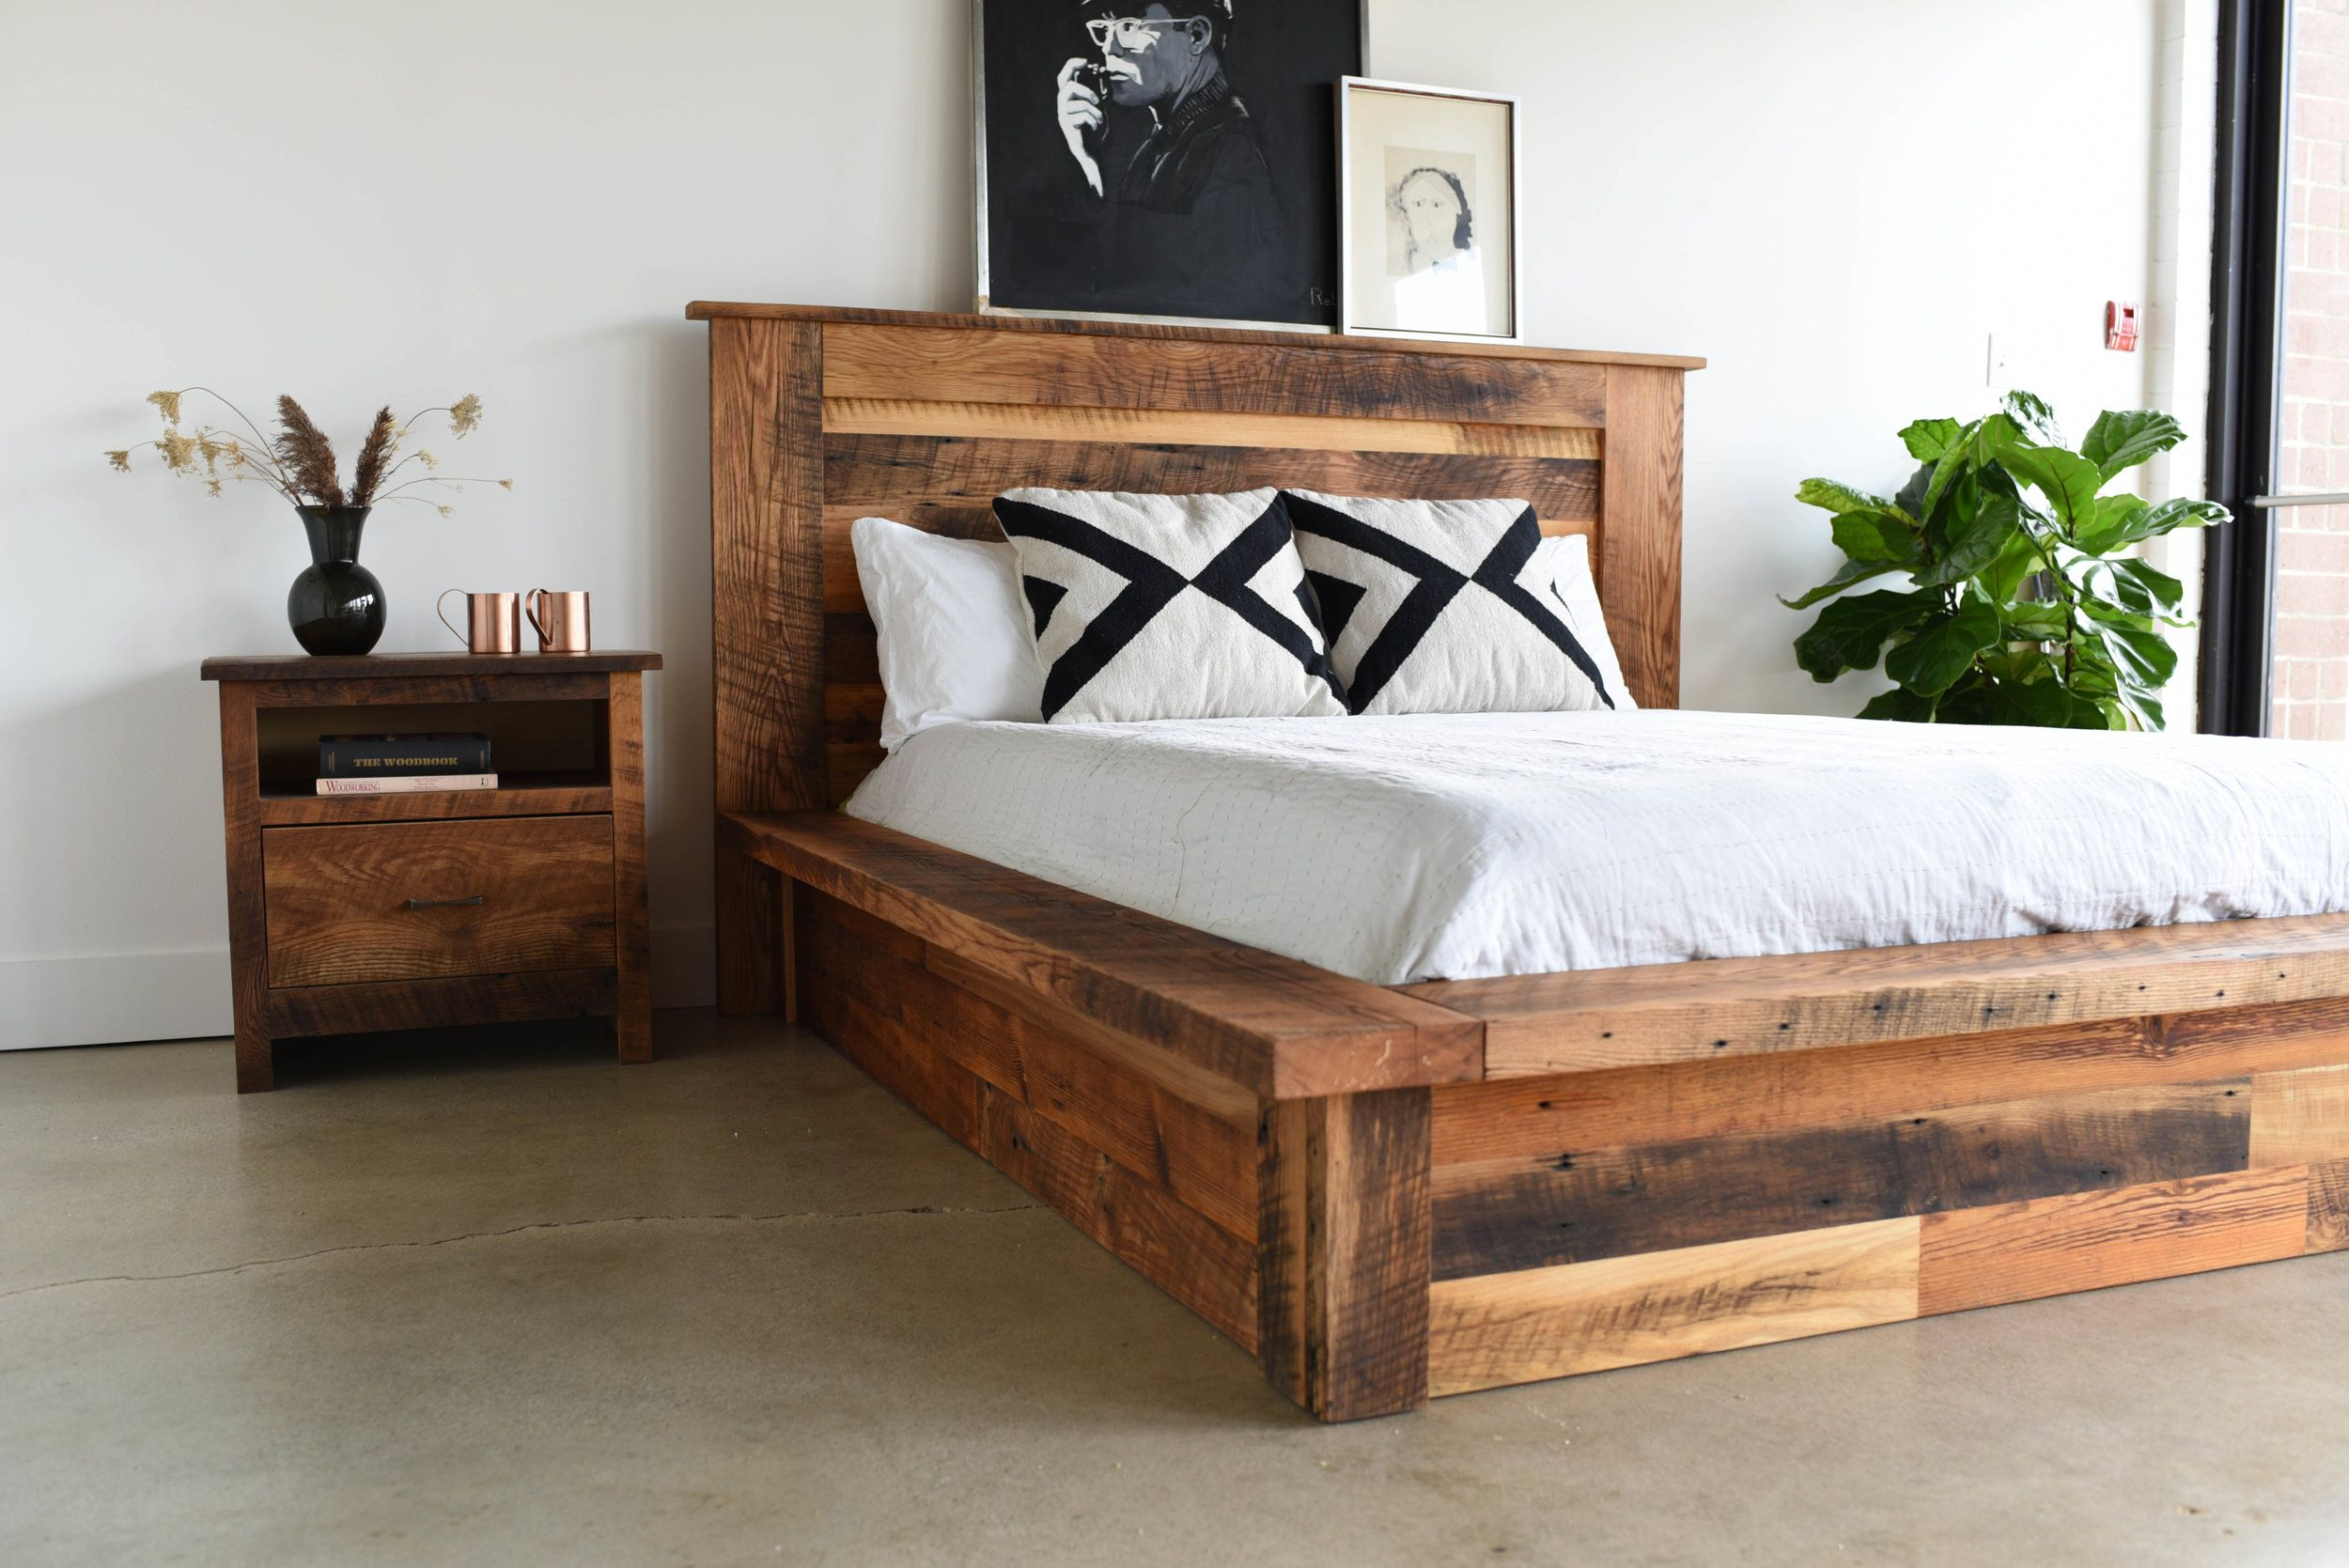 Modern Reclaimed Wood Bed What We Make In 2020 Bedroom Furniture Makeover Bedroom Furniture Wood Platform Bed